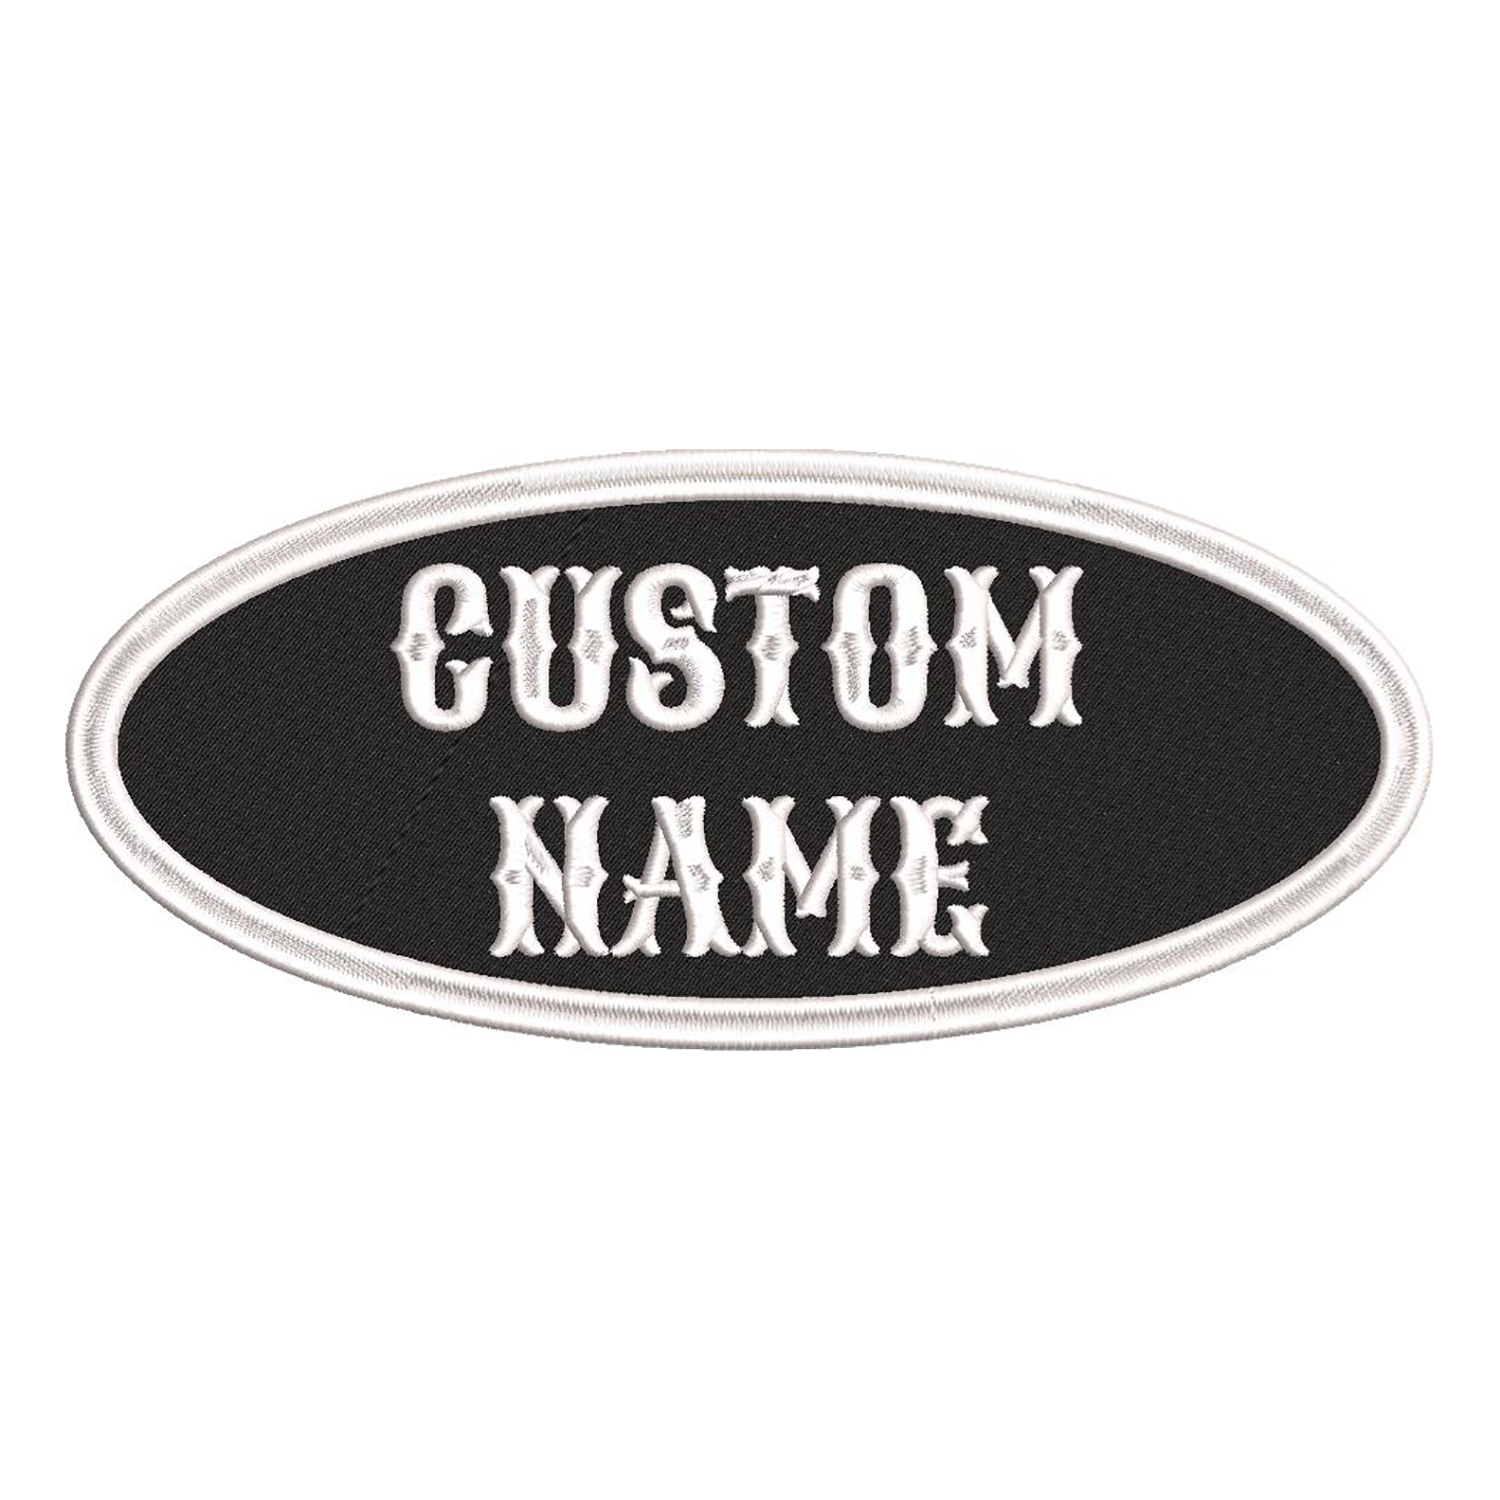 $7.00 · 5 inches Oval Custom Embroidered Name Tag Biker Patch